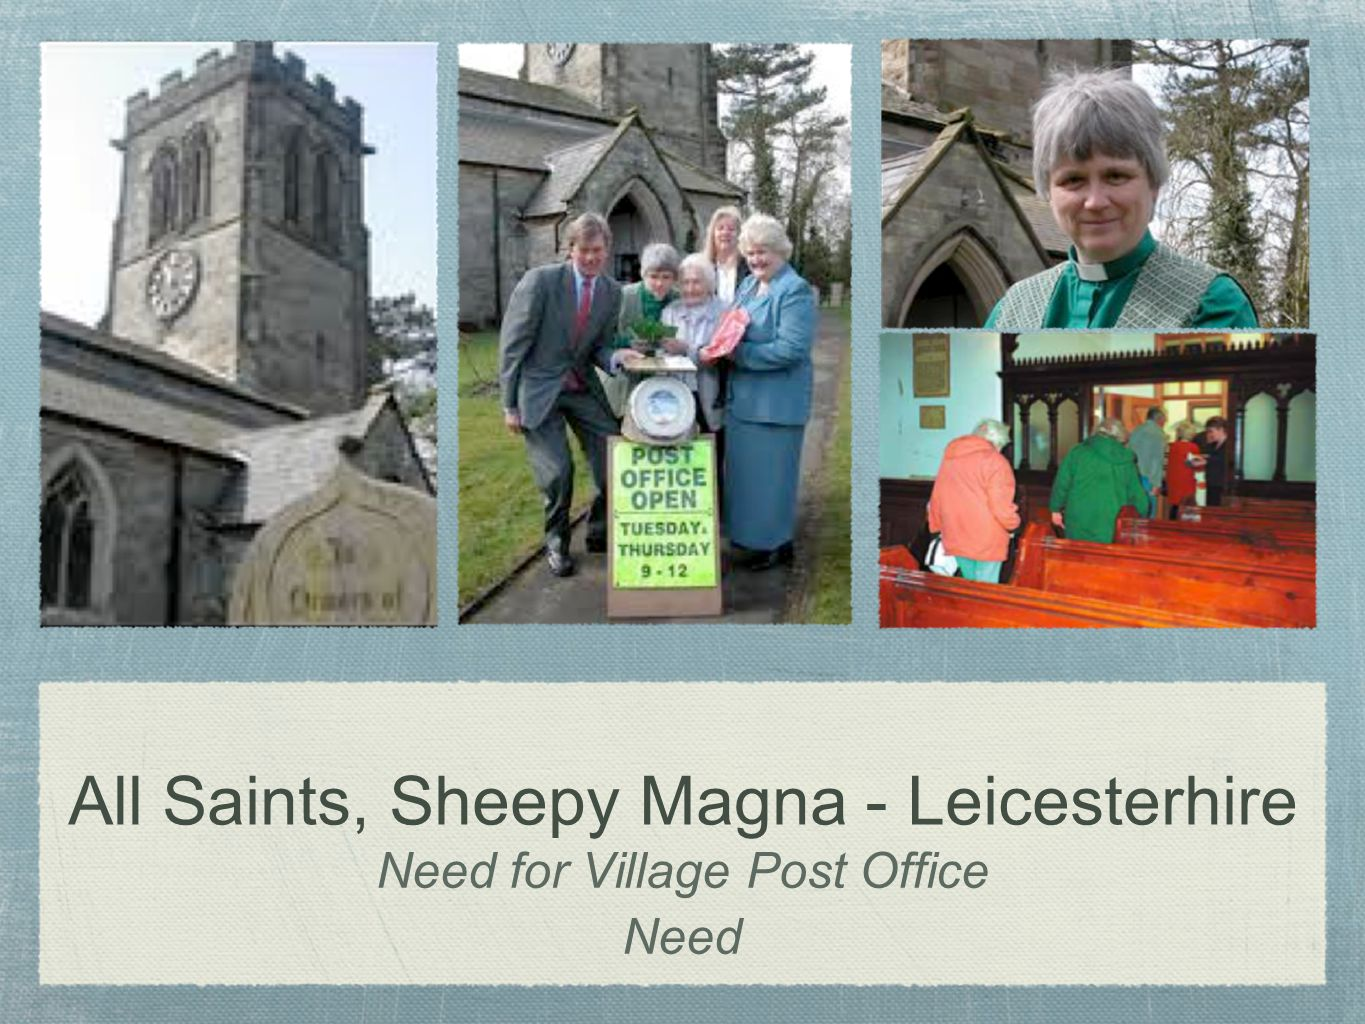 All Saints, Sheepy Magna - Leicesterhire